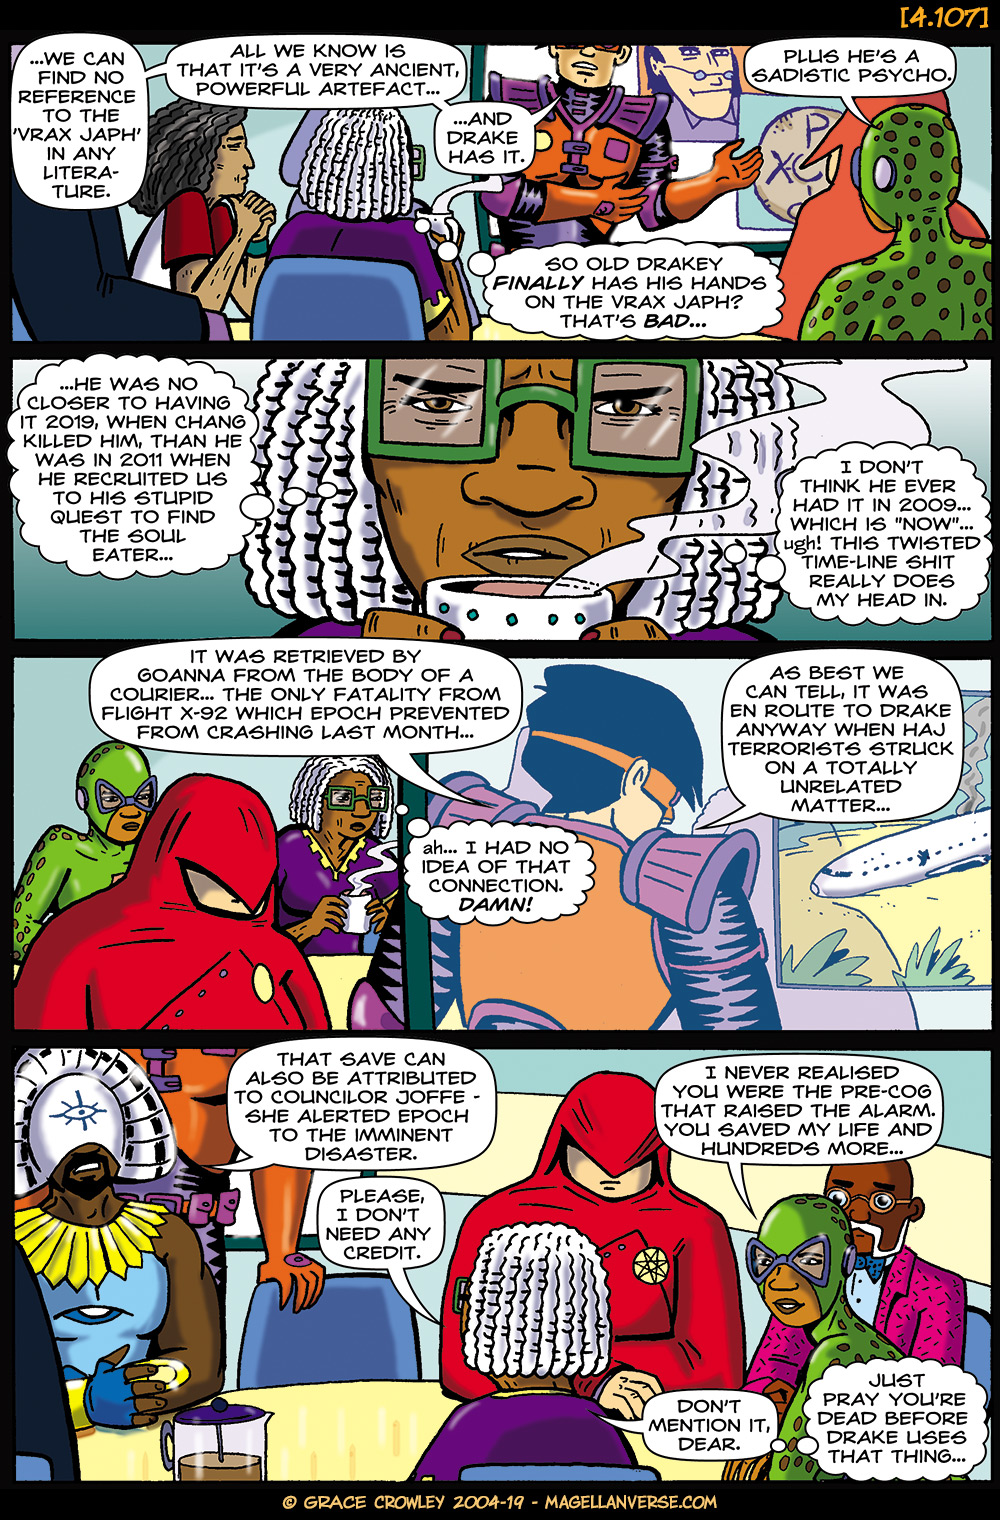 Page 4.107